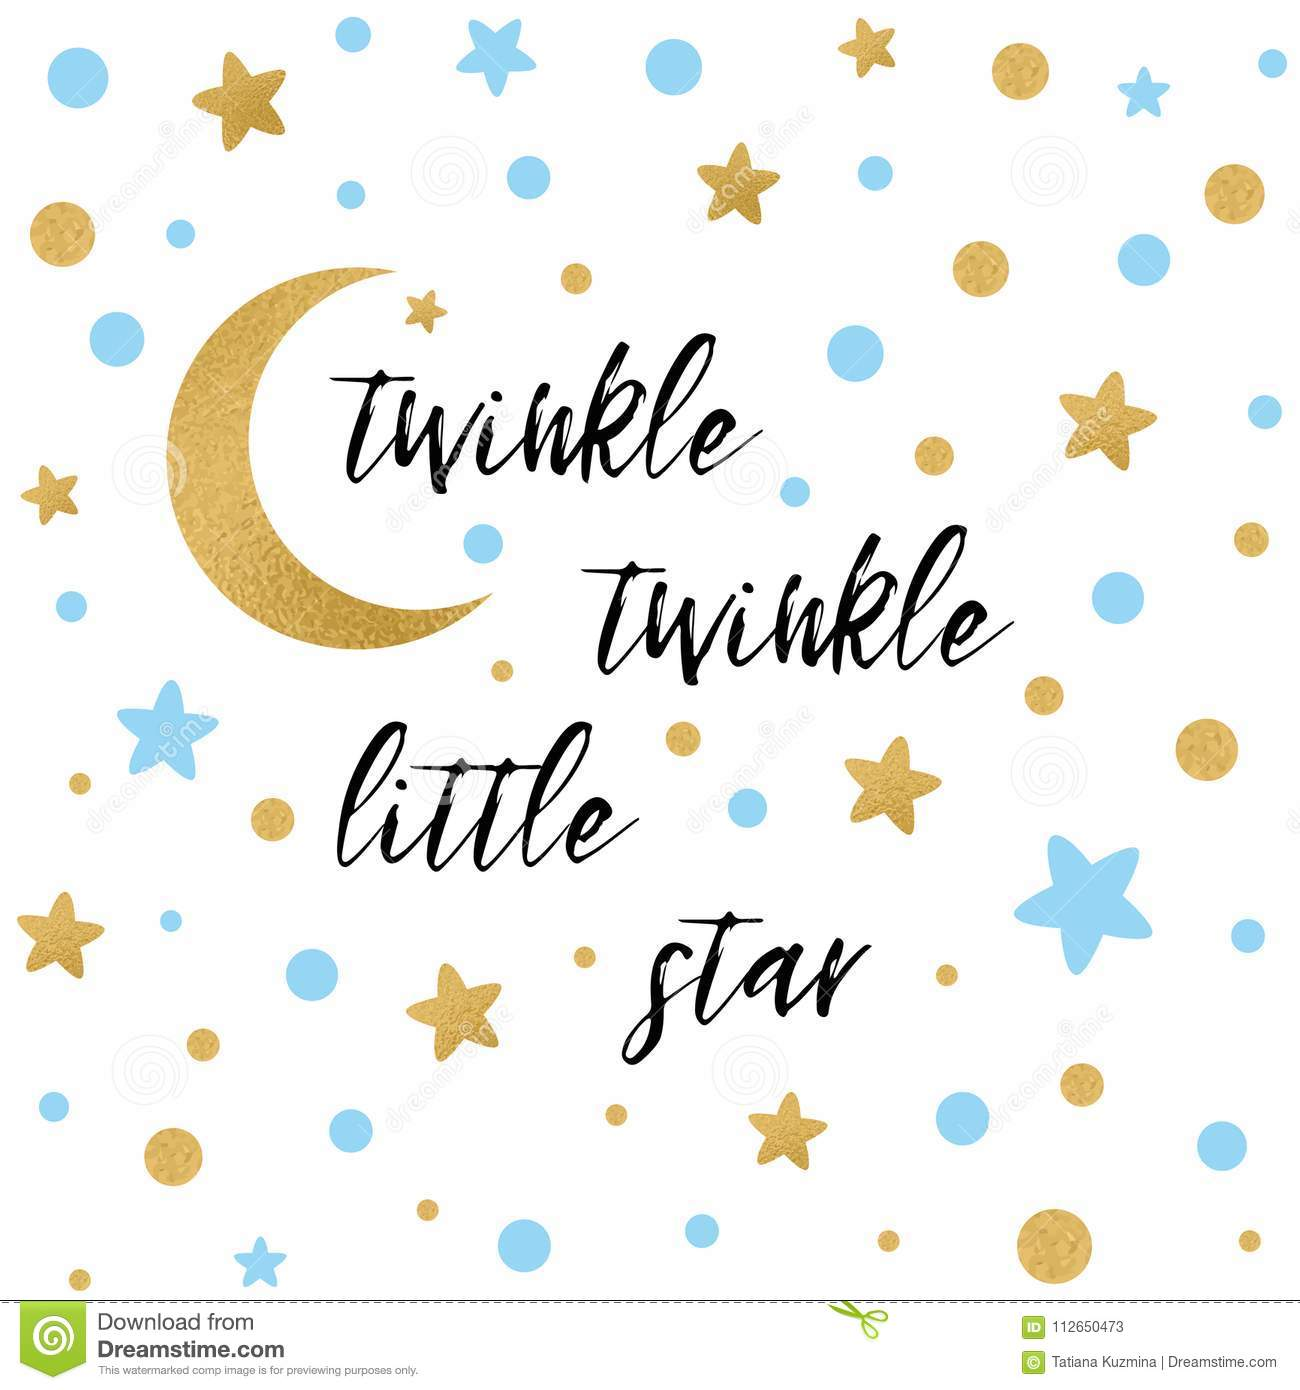 Twinkle Twinkle Little Star Text With Gold Blue Star And Moon For